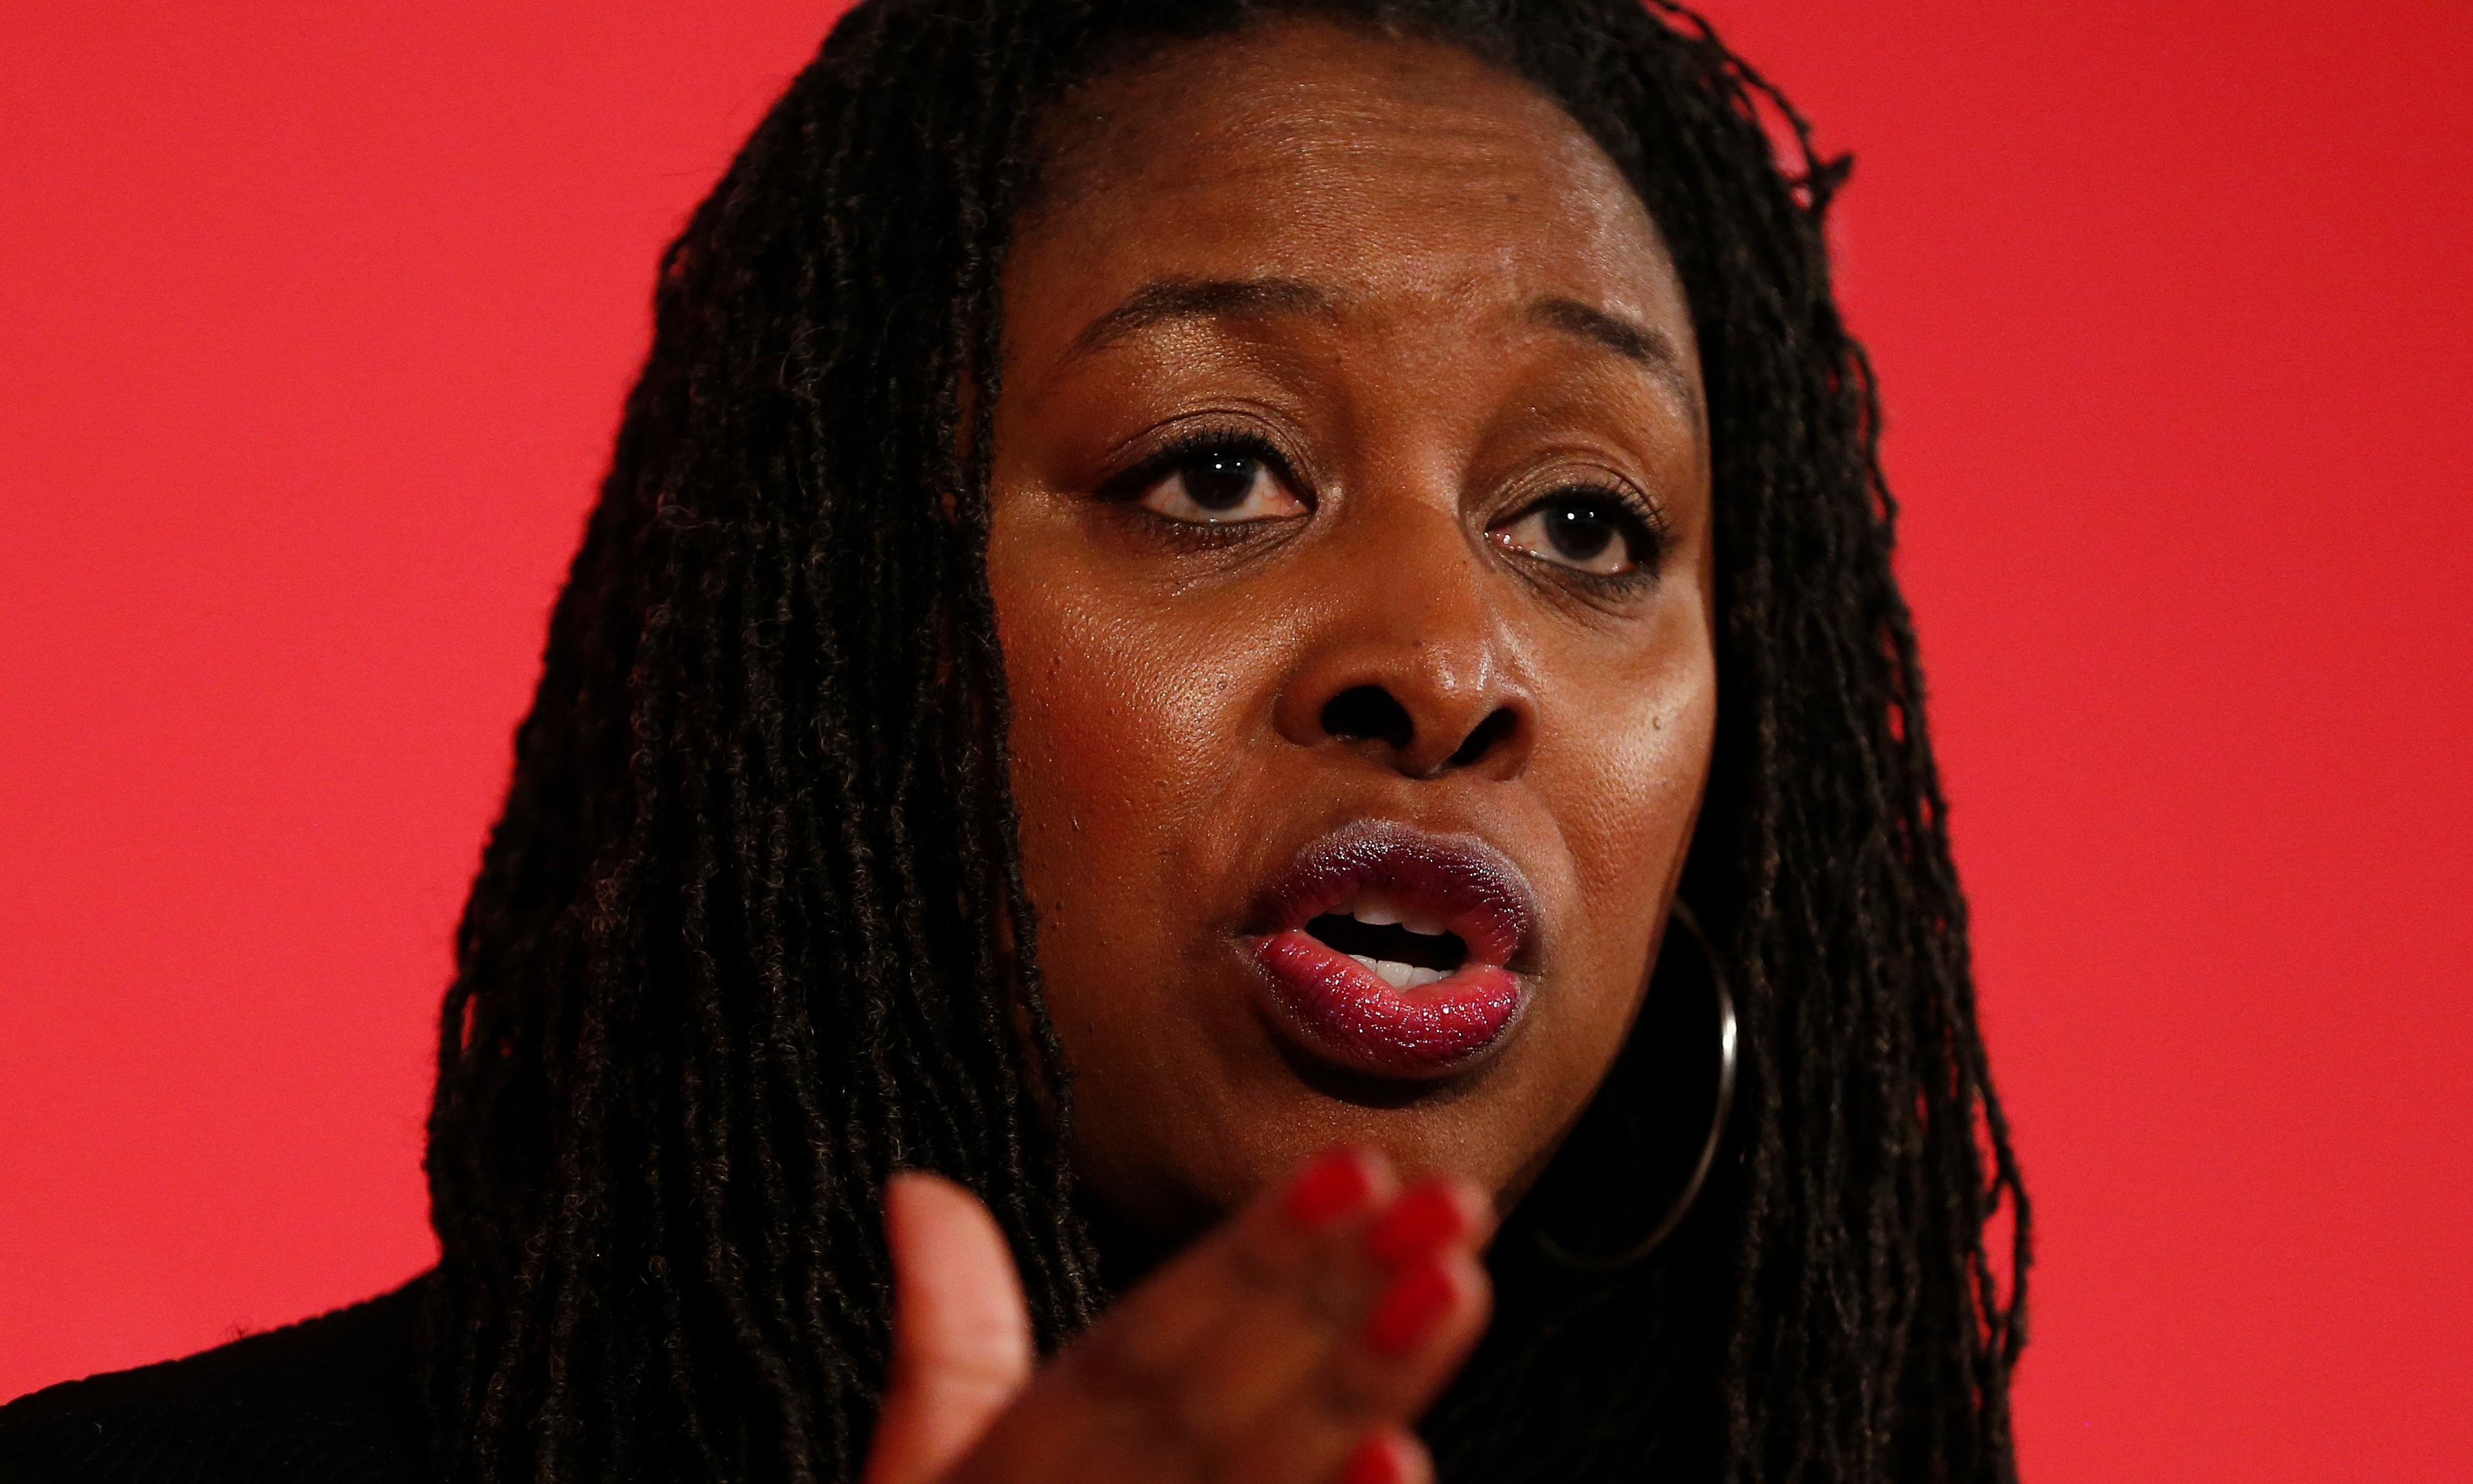 Dawn Butler: I'm mistaken for other black female MPs at least once a week